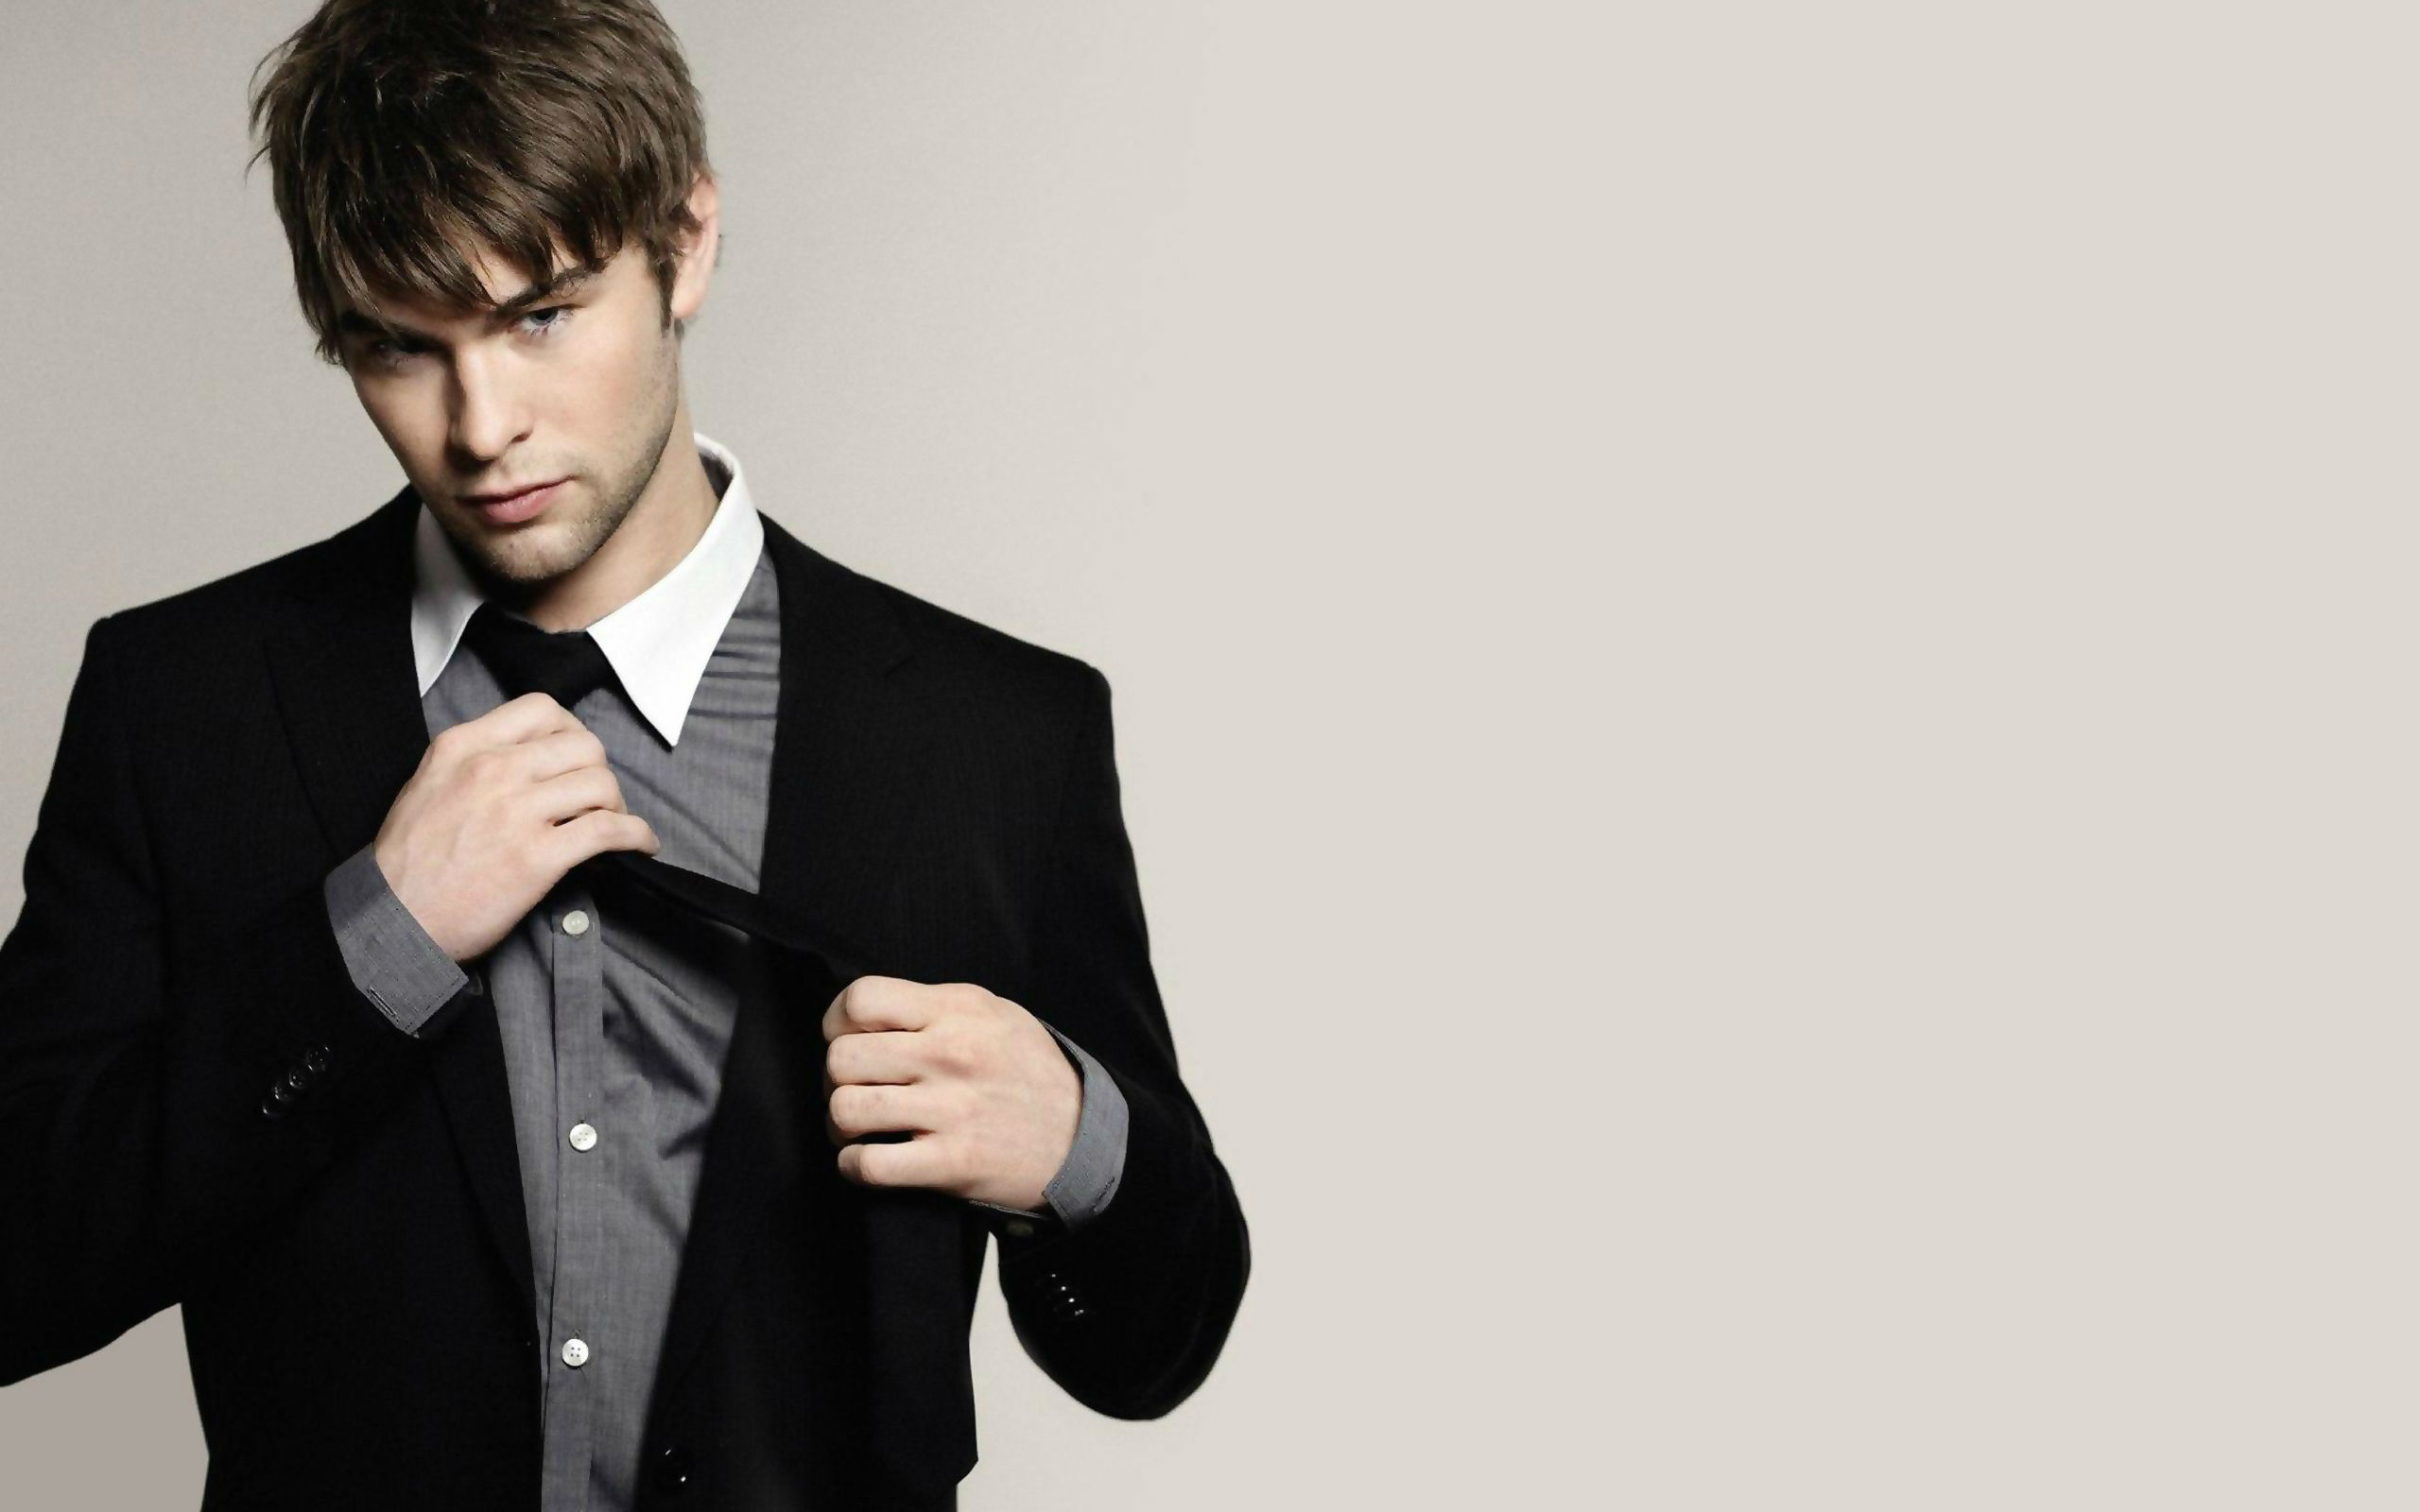 chace crawford wallpaper background 54779